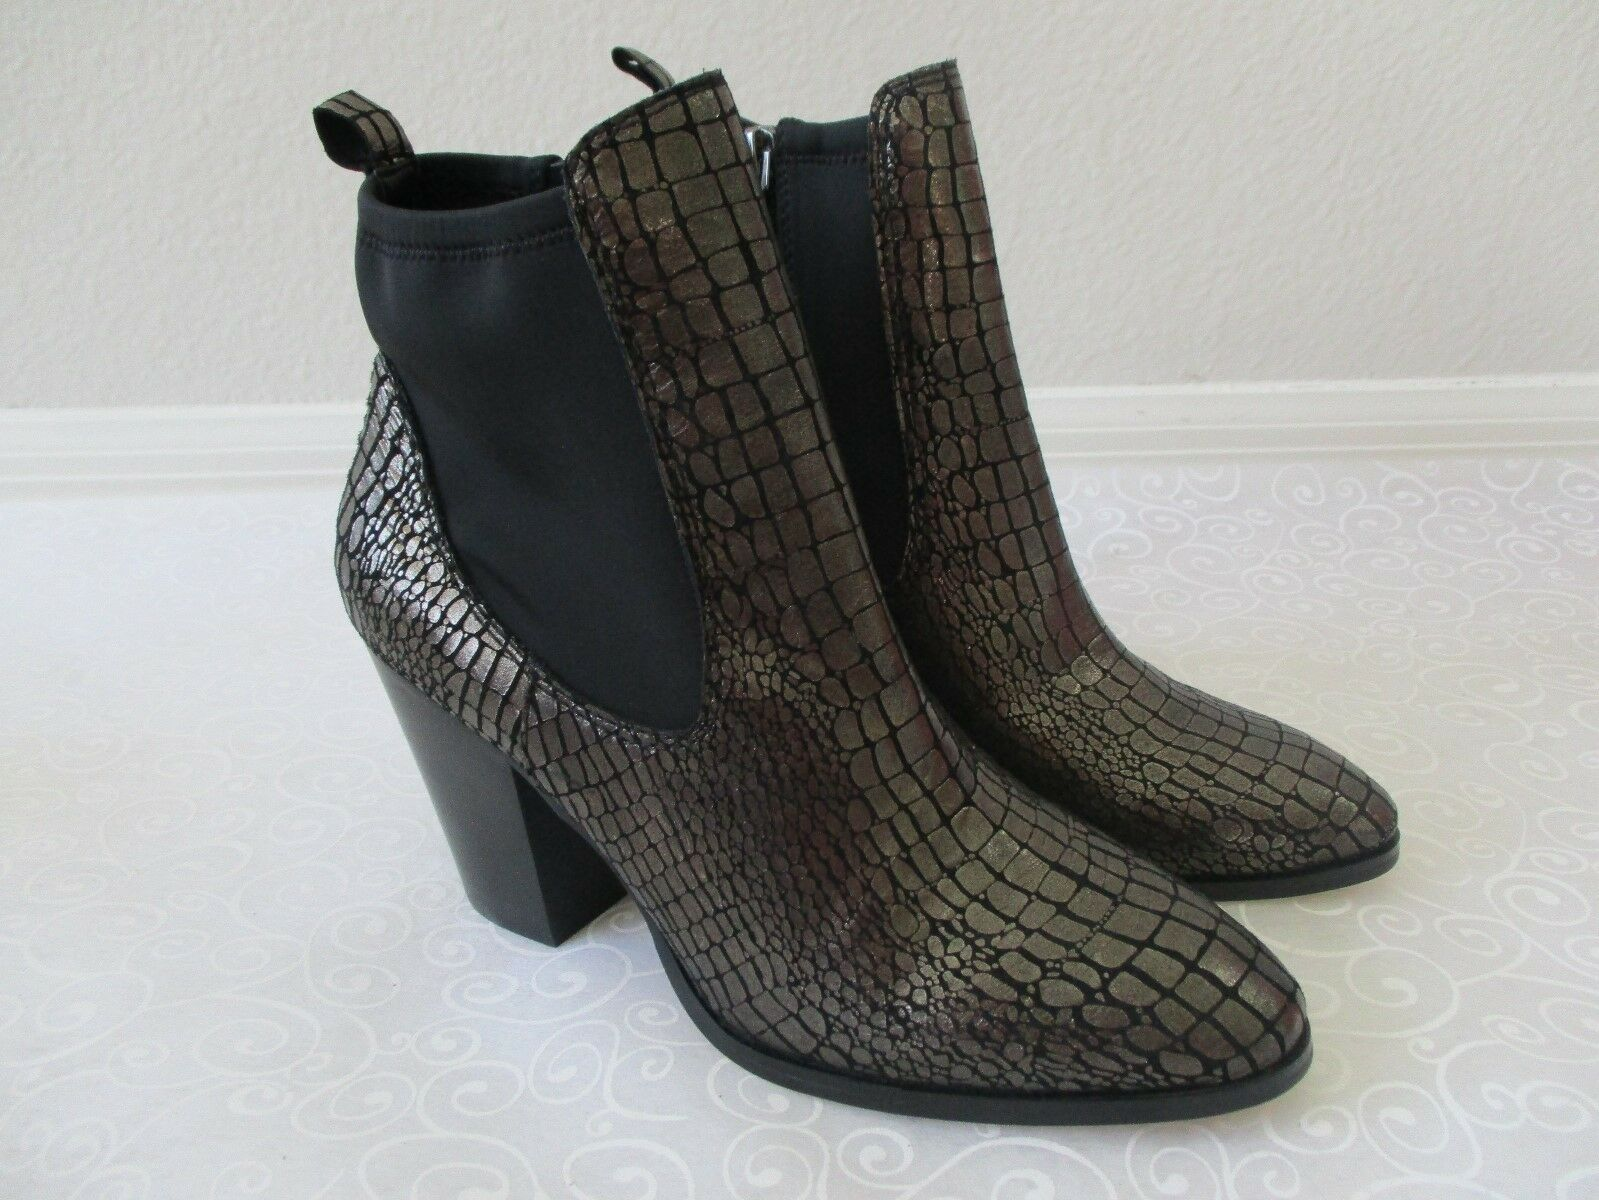 DONALD J PLINNER PEWTER SILVER METALLIC CROCCO ANKLE BOOTS SIZE 9 1 2 M - NEW